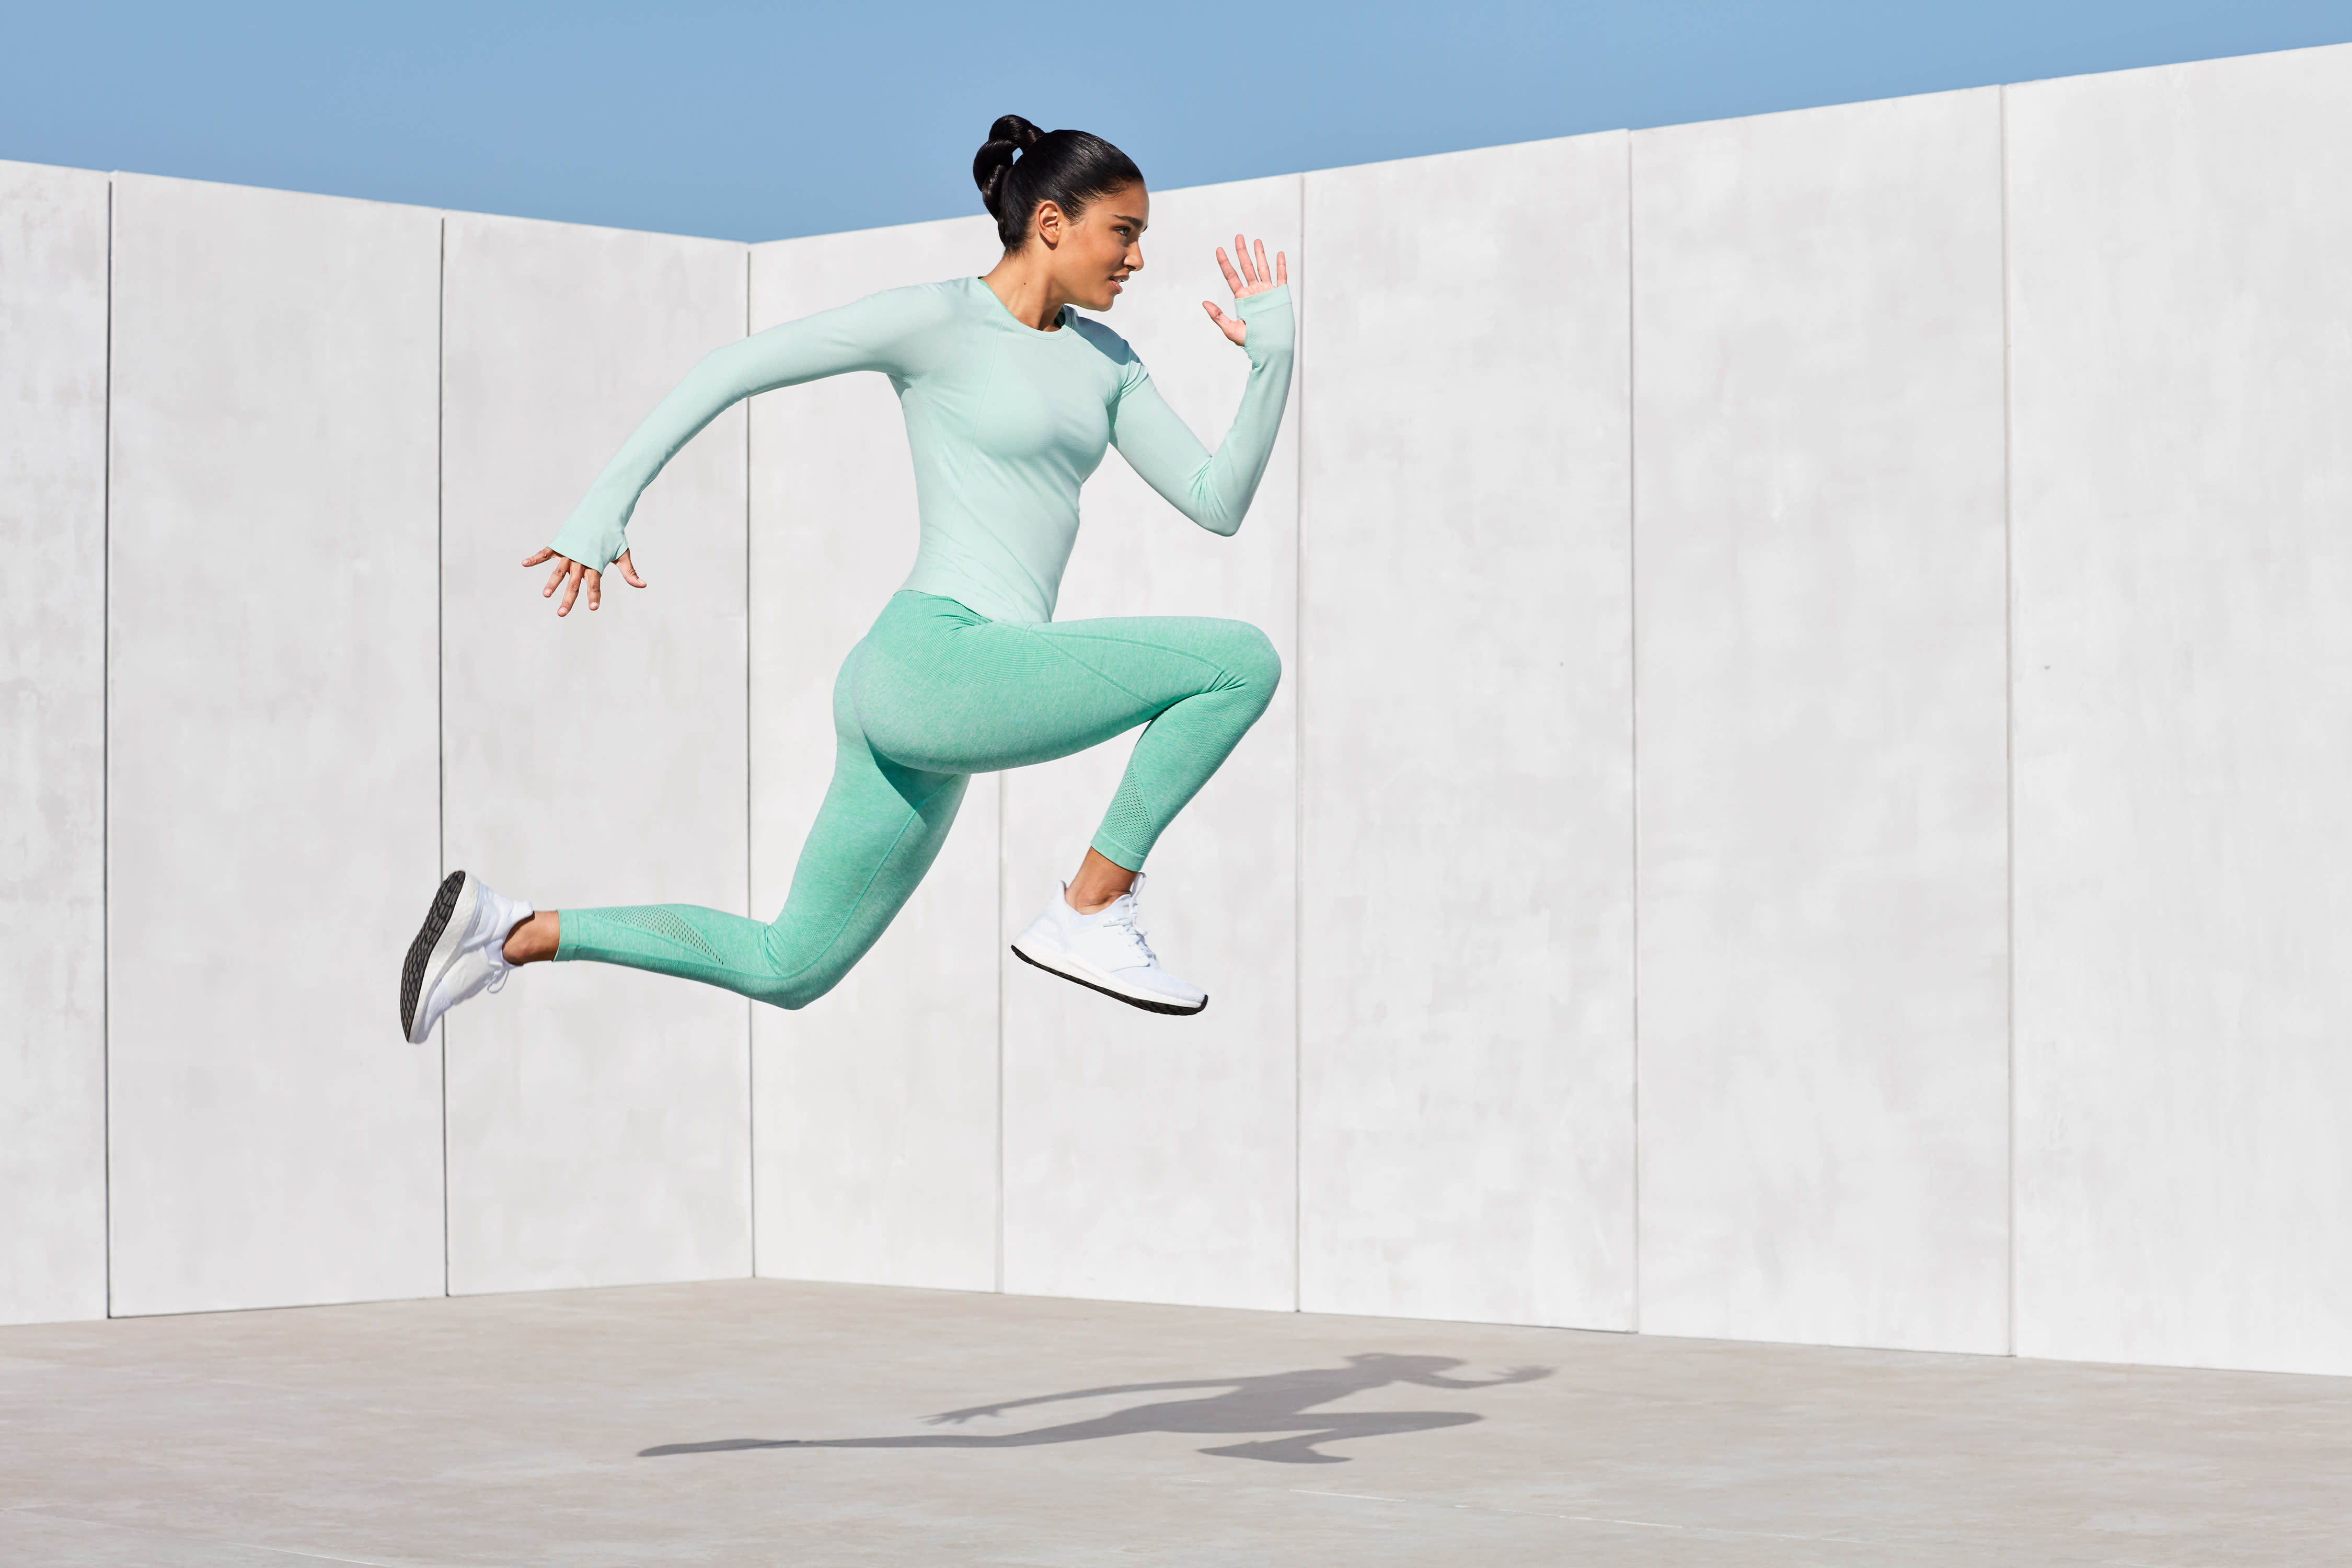 Target's activewear brand hits $1 billion in sales, as retailer gains ground in apparel - CNBC